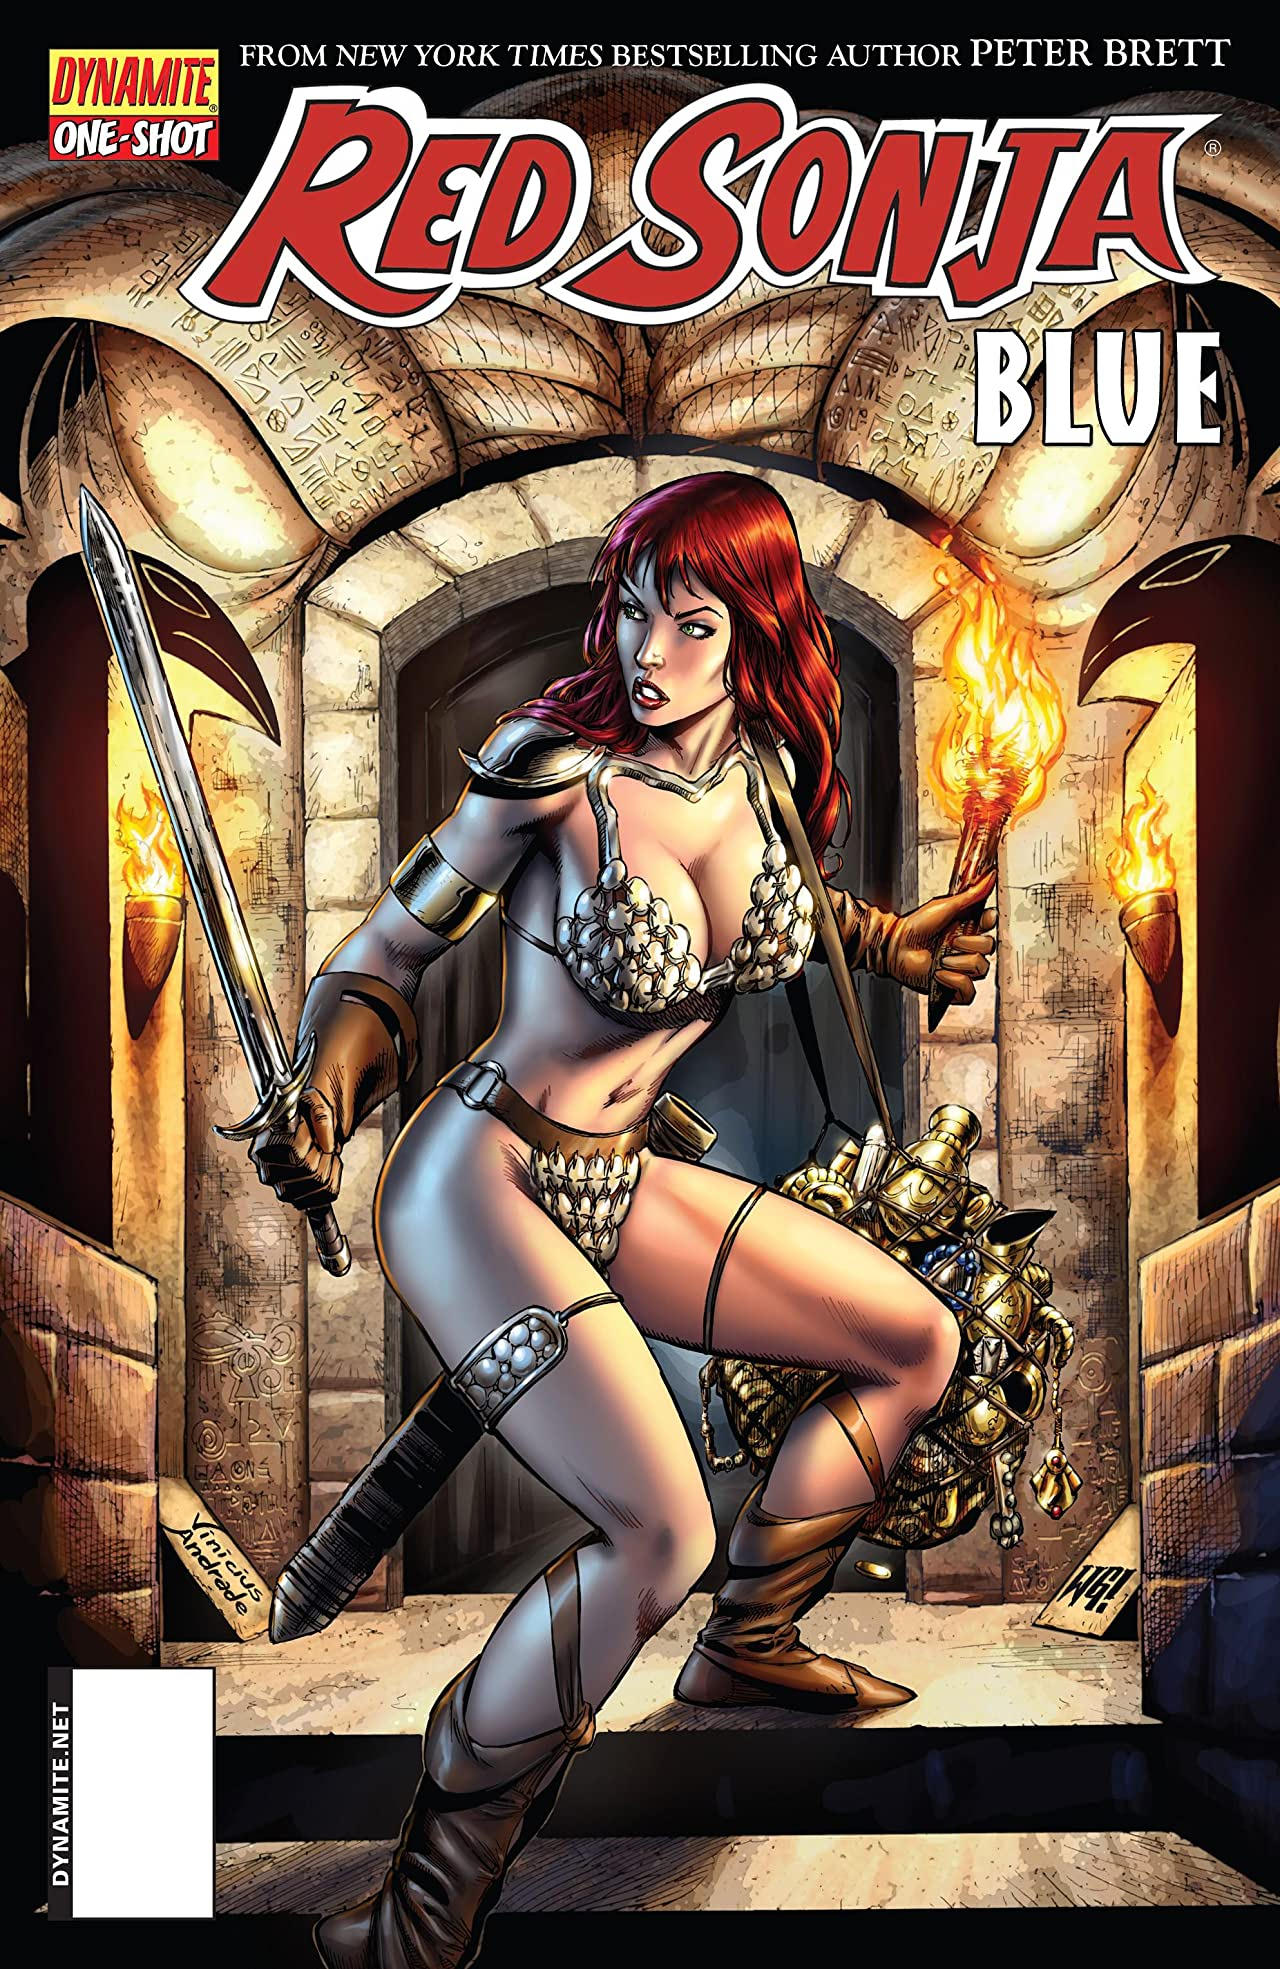 Red Sonja: Blue